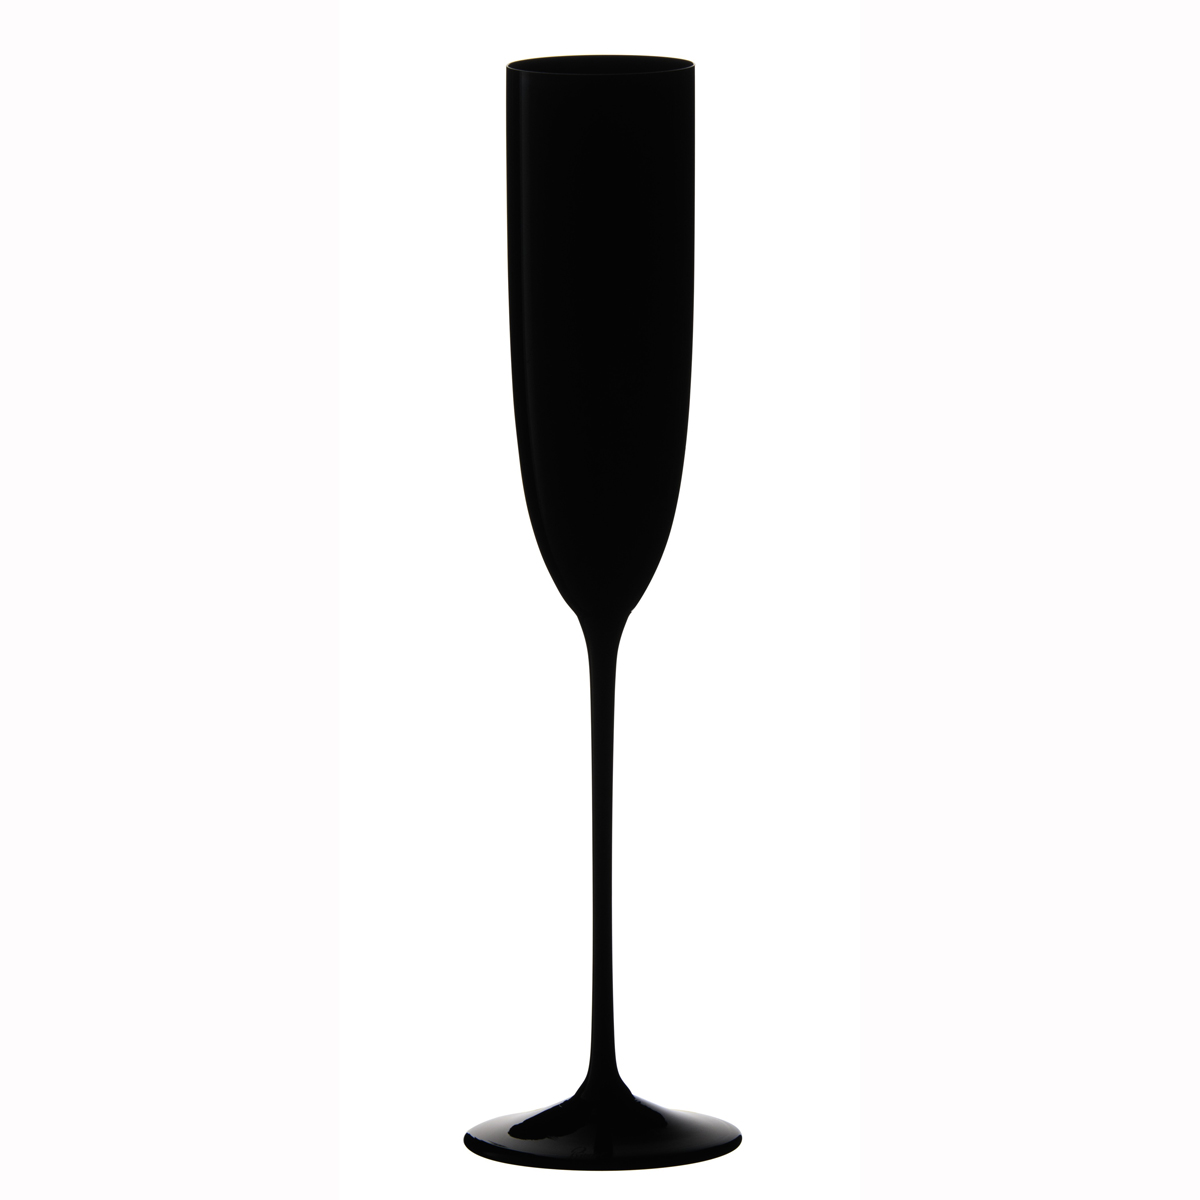 Riedel Sommeliers Black Series Black Champagne Glass